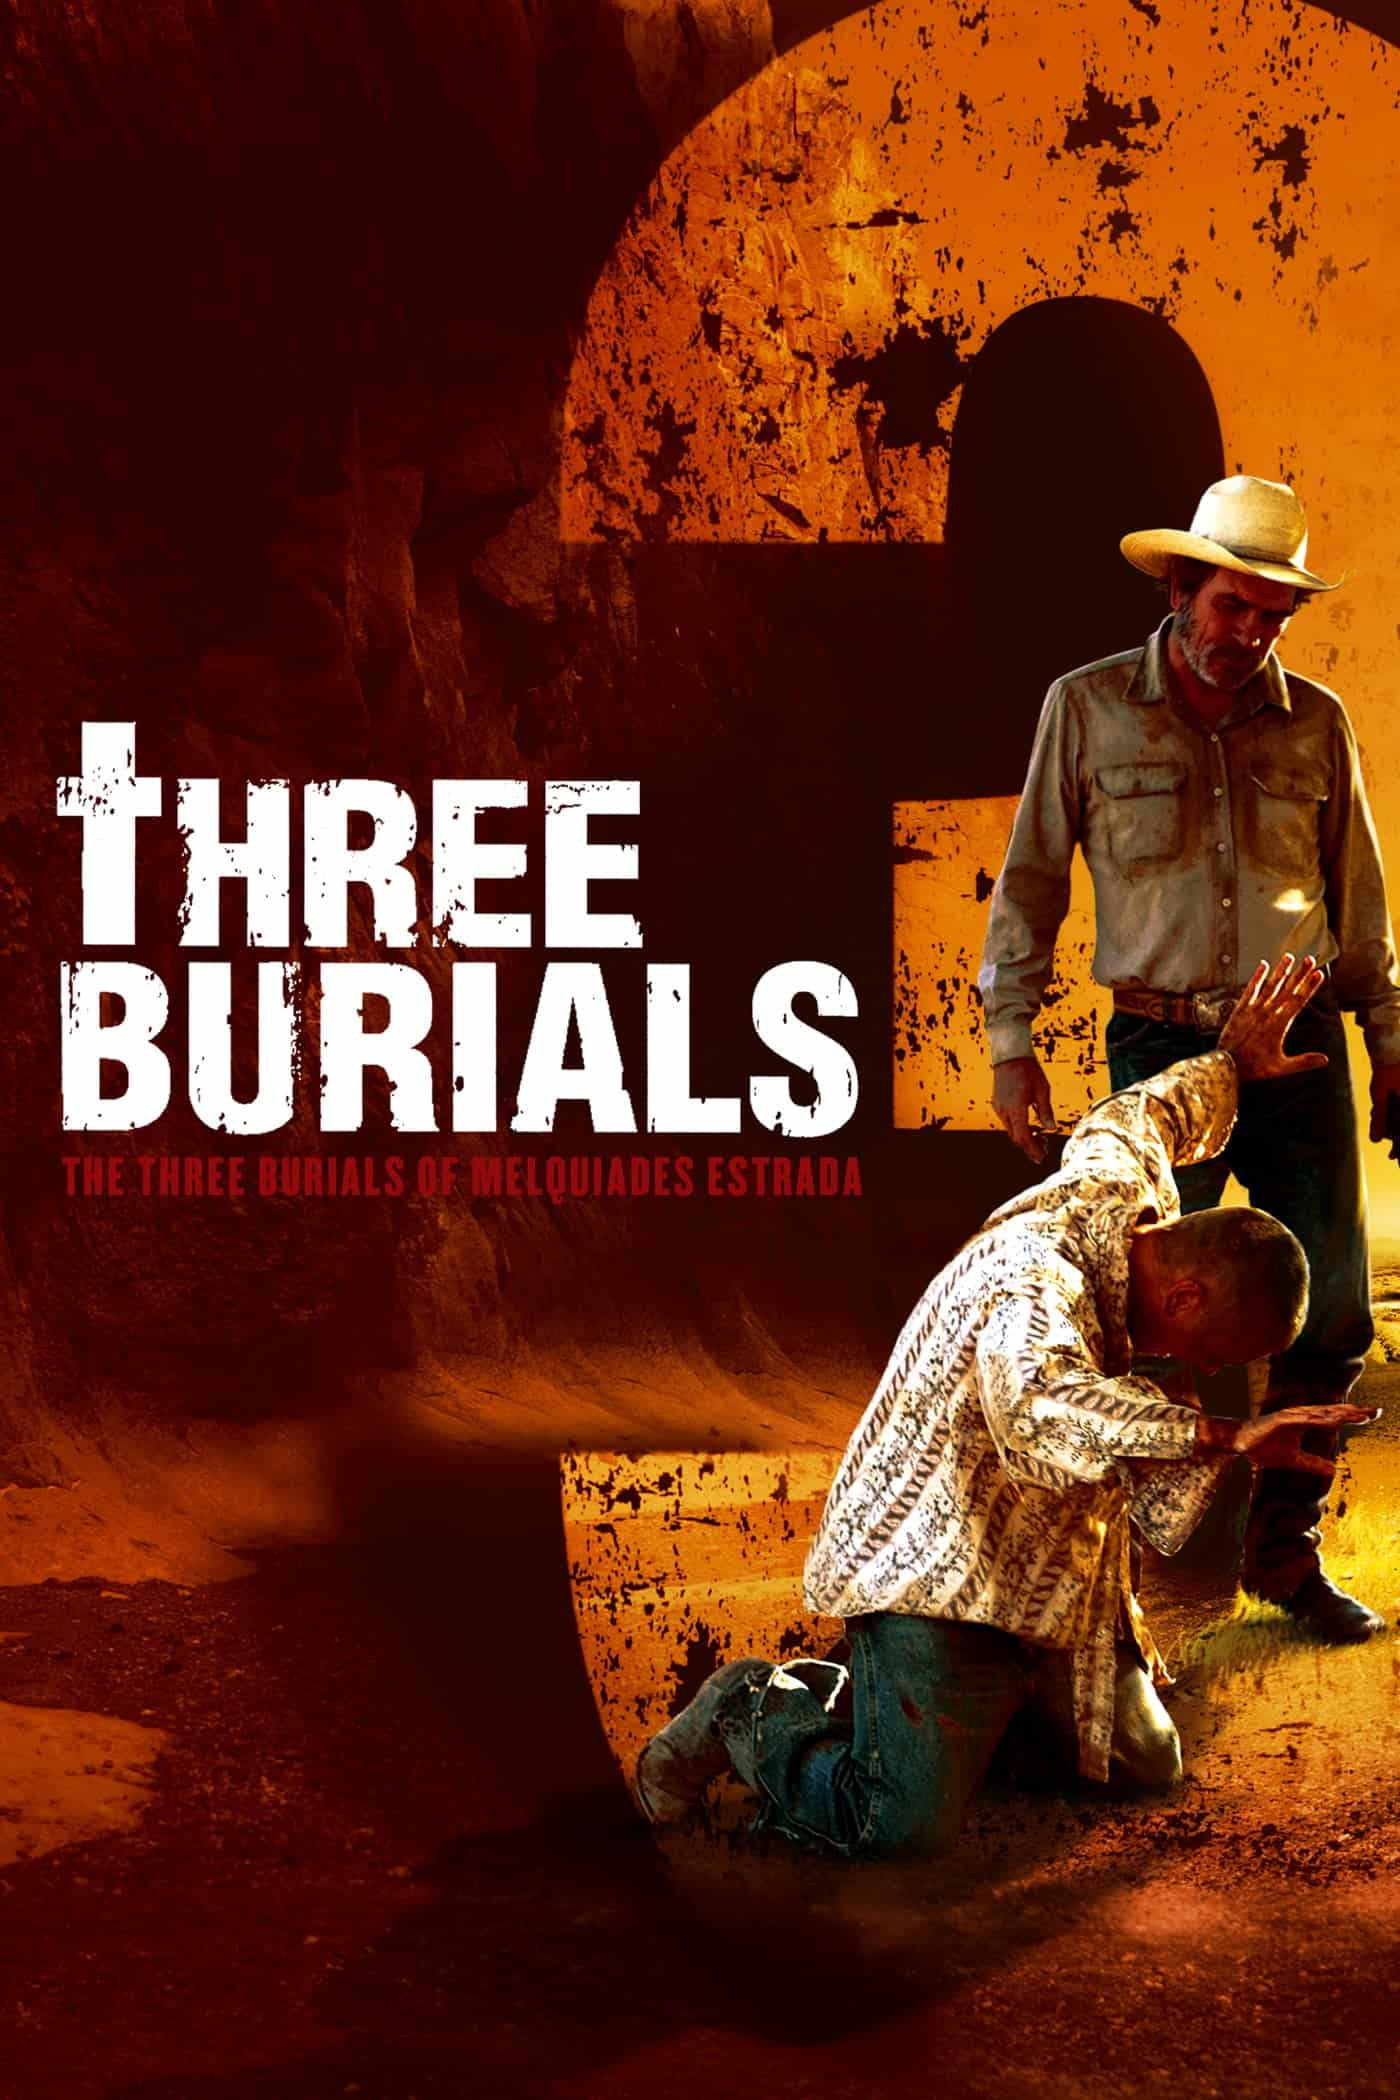 The Three Burials of Melquiades Estrada, 2005